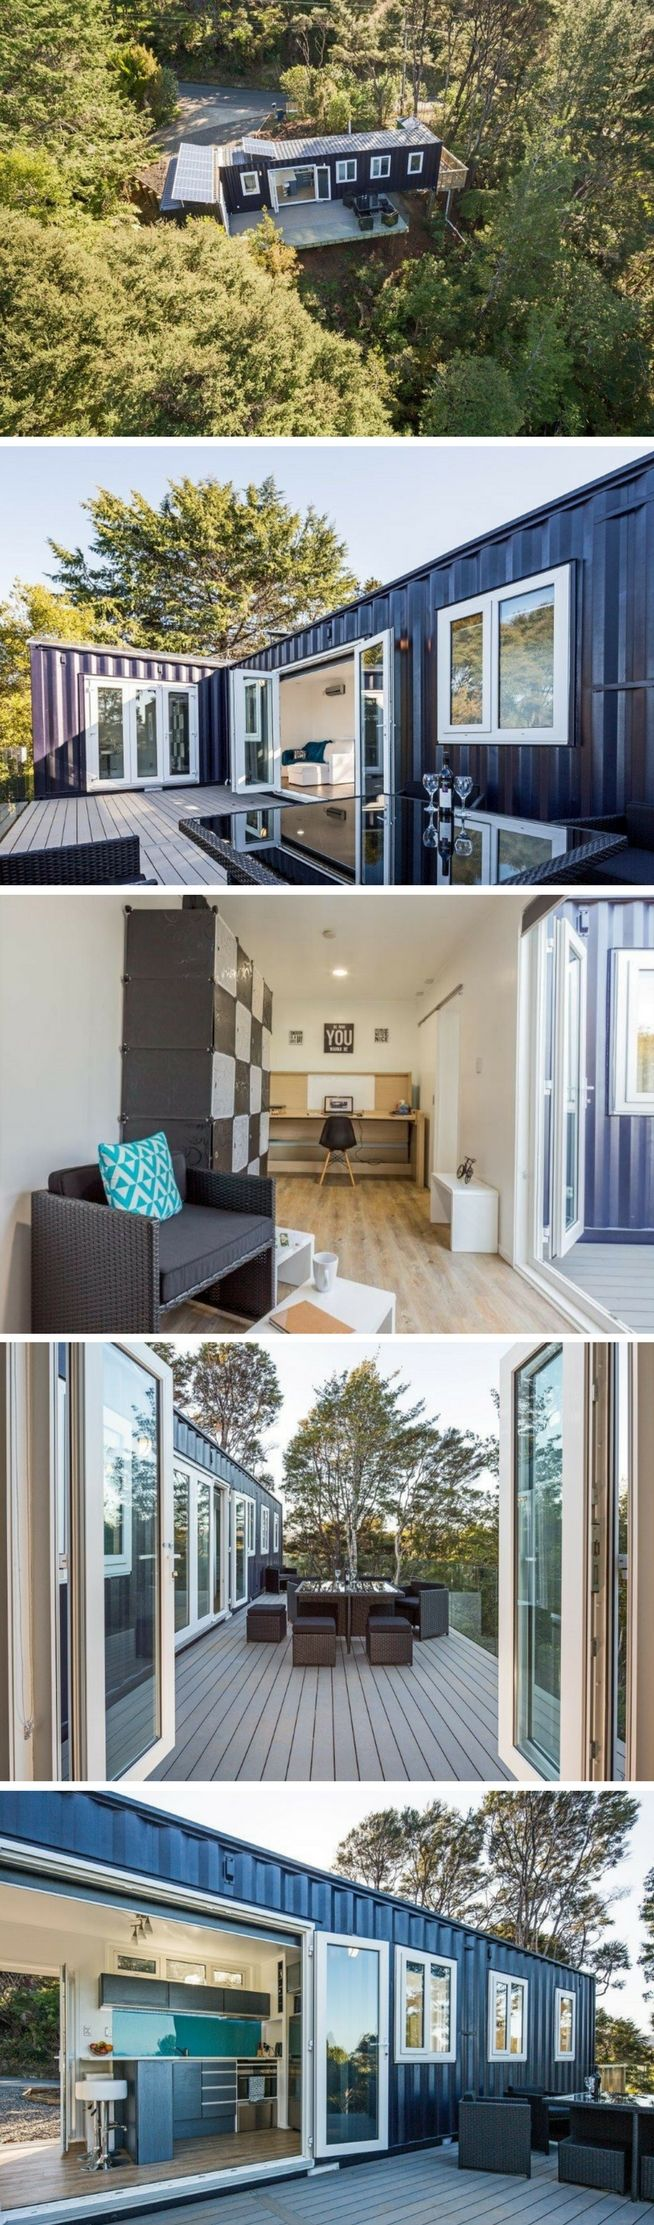 TEKAPO TINY SHIPPING CONTAINER HOME